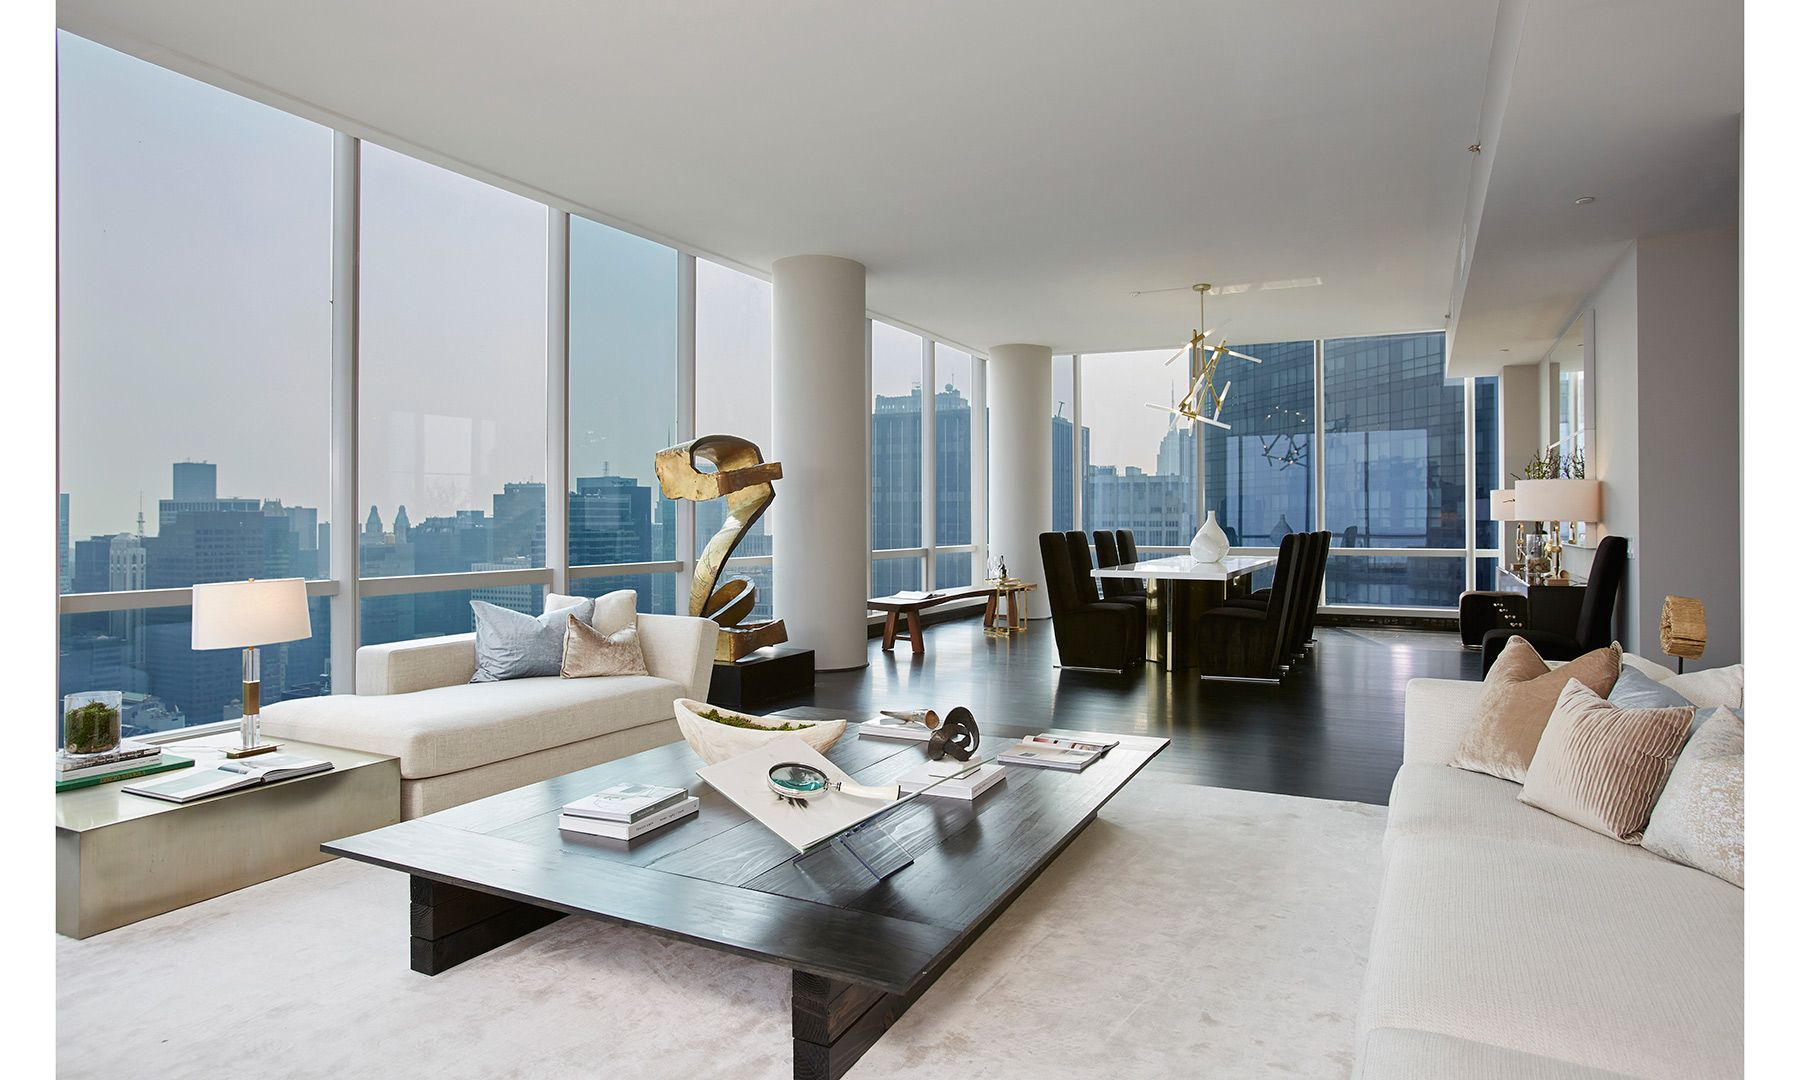 pictures unit 54b at one57 in 2019 luxury home tours rh pinterest com